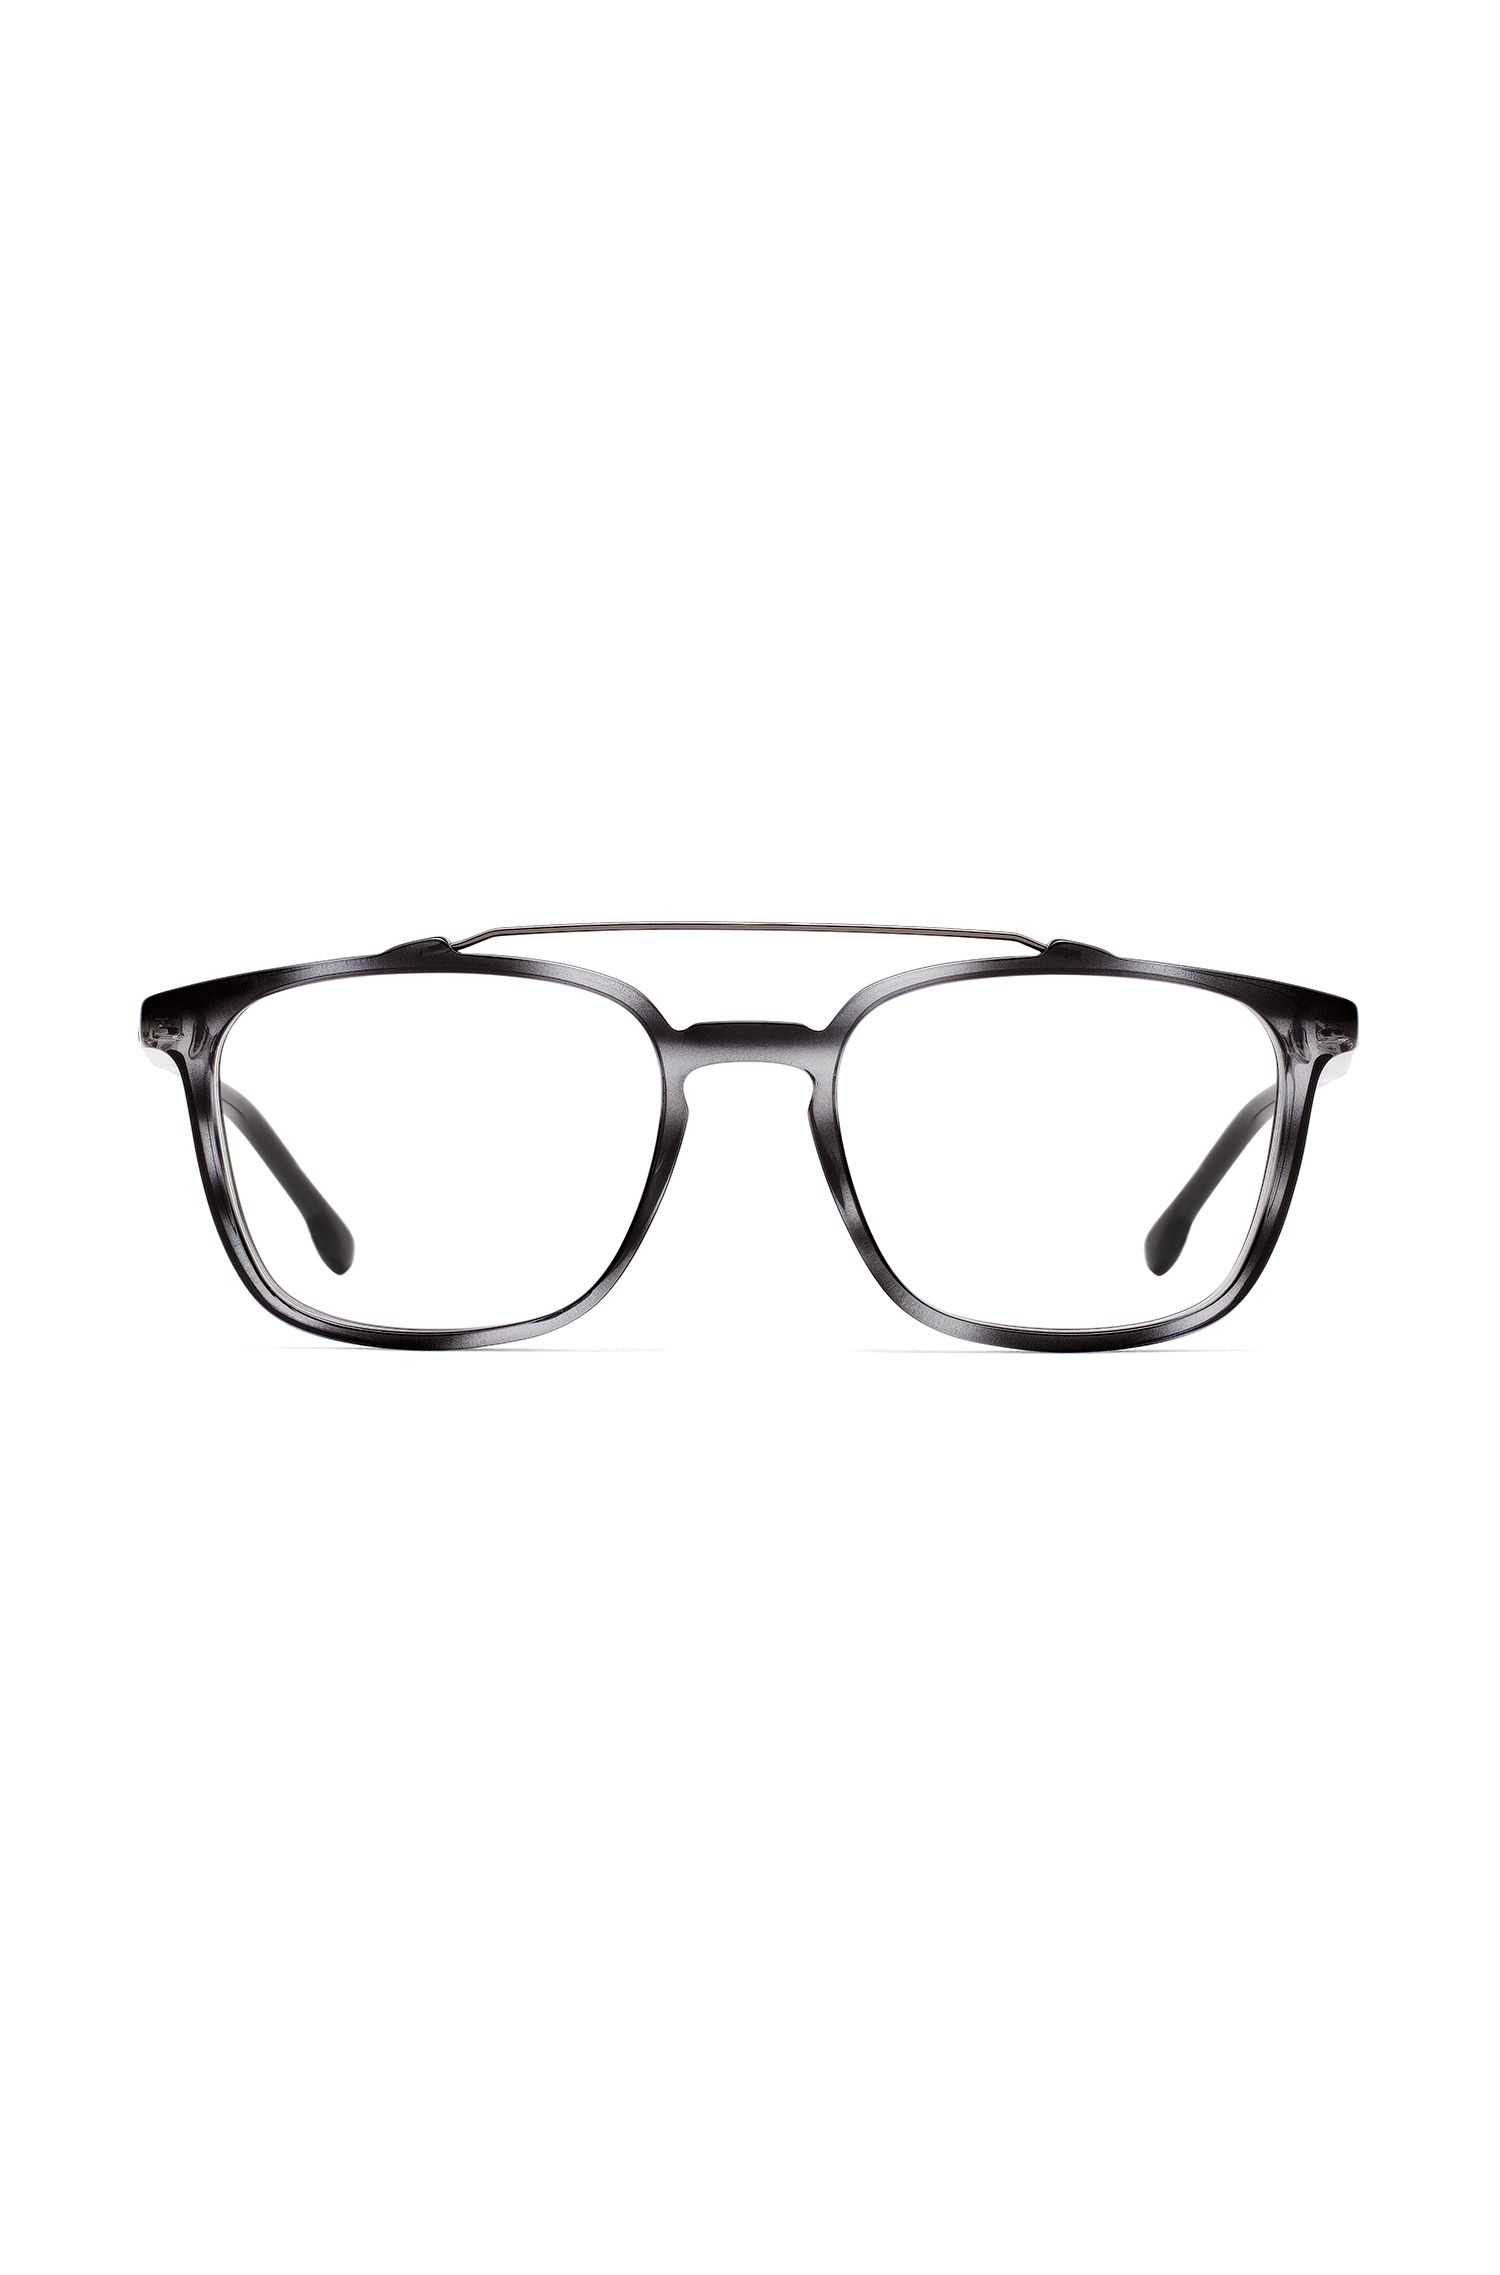 Optyl glasses with double bridge, Patterned